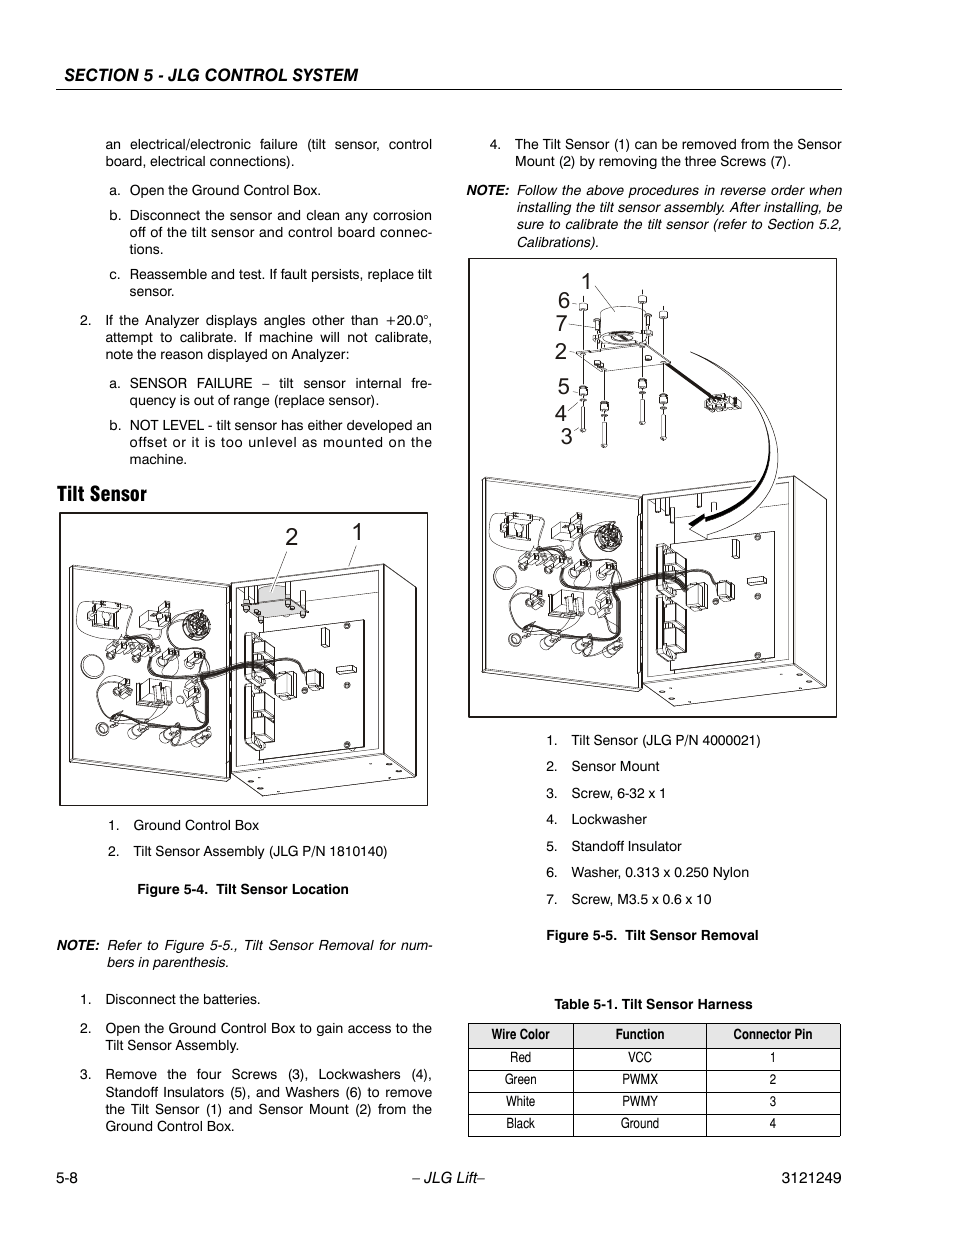 hight resolution of 3394rt jlg wiring schematic wiring diagrams jlg 4394rt service manual page214 3394rt jlg wiring schematic wiring diagrams at cita asia